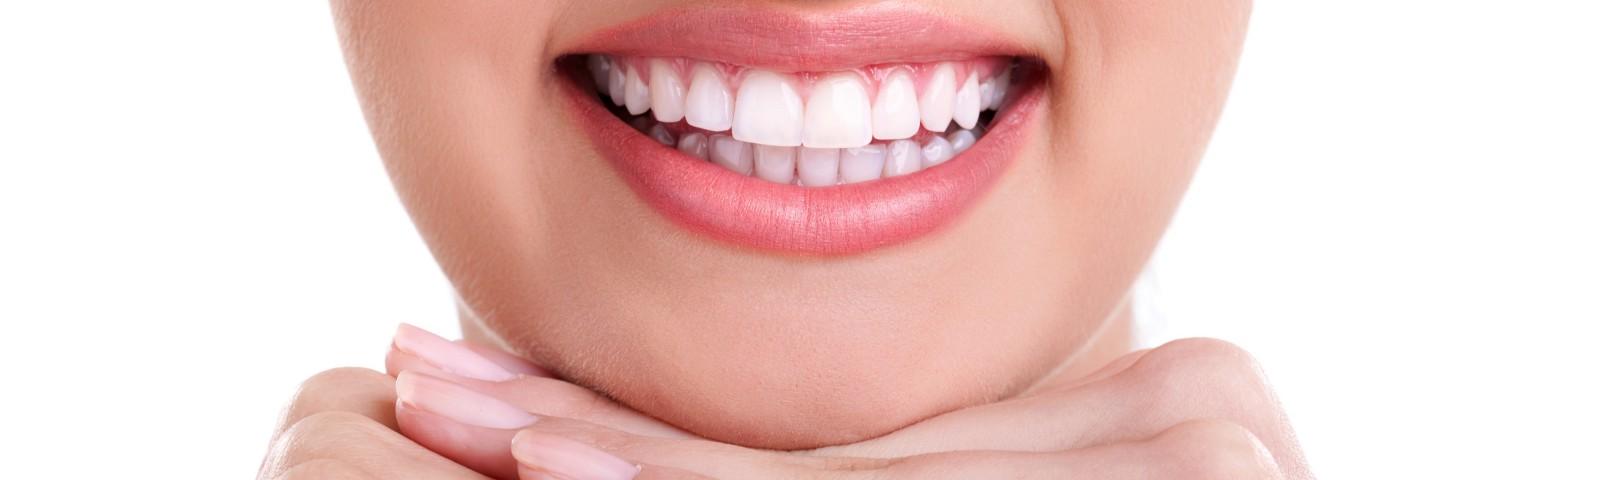 We are the best teeth whitening dentistry in Sydney.